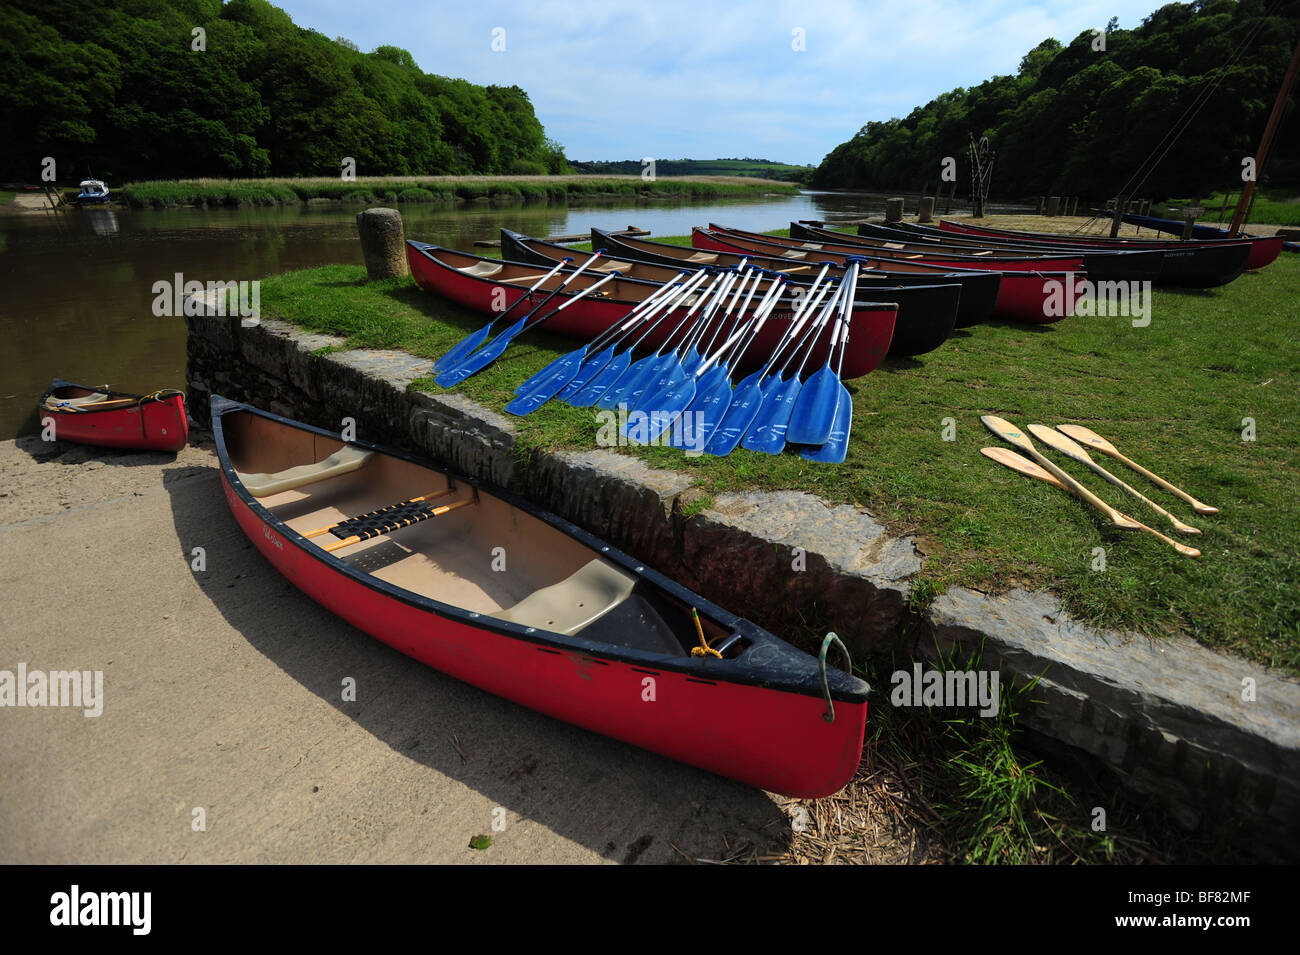 canoes and kayaks resting on the bank of the River Tamar, on the Devon and Cornwall border, UK Stock Photo